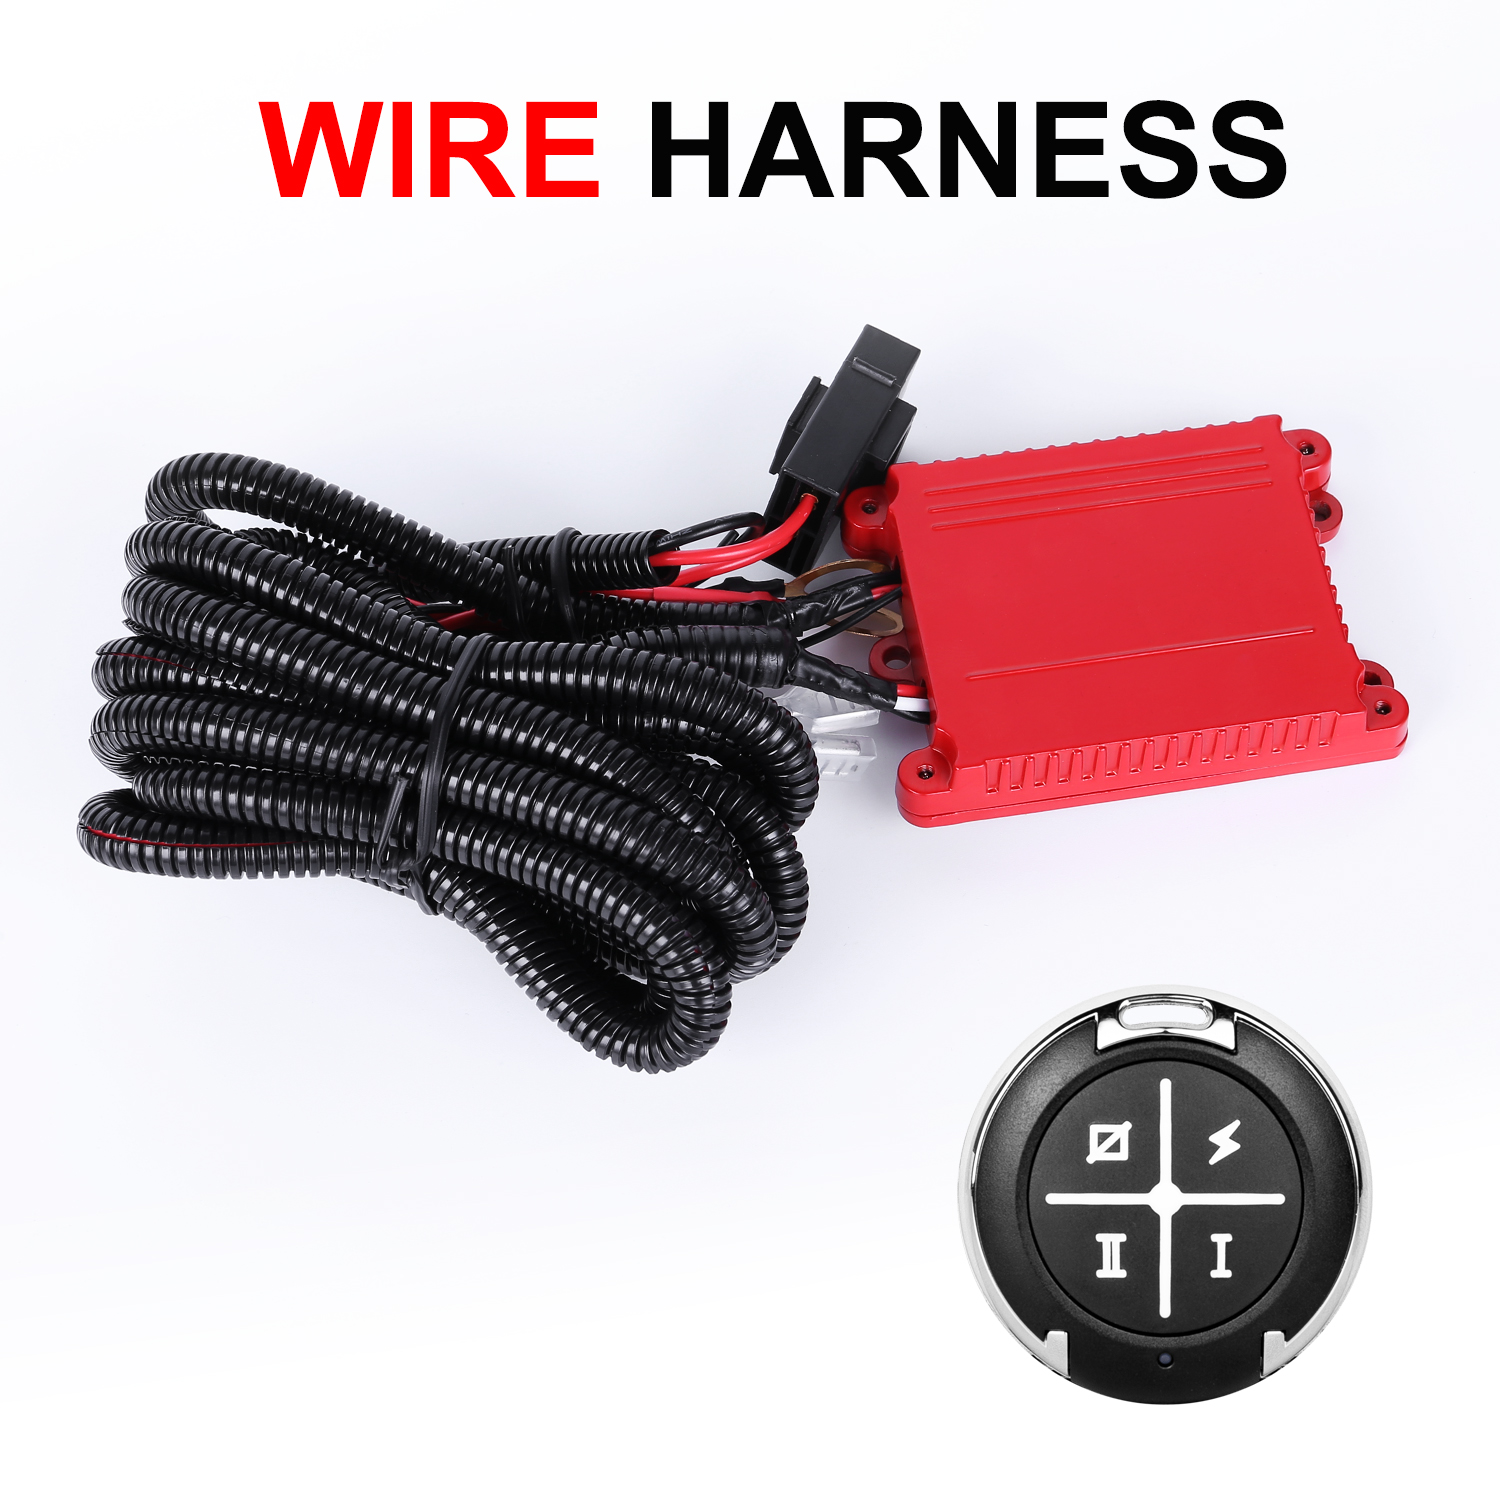 Autofeel Wiring Harness Kit Led Light Bar Remote Switch Freely Relay Hid Driving 40a 12v Ebay Dual Color